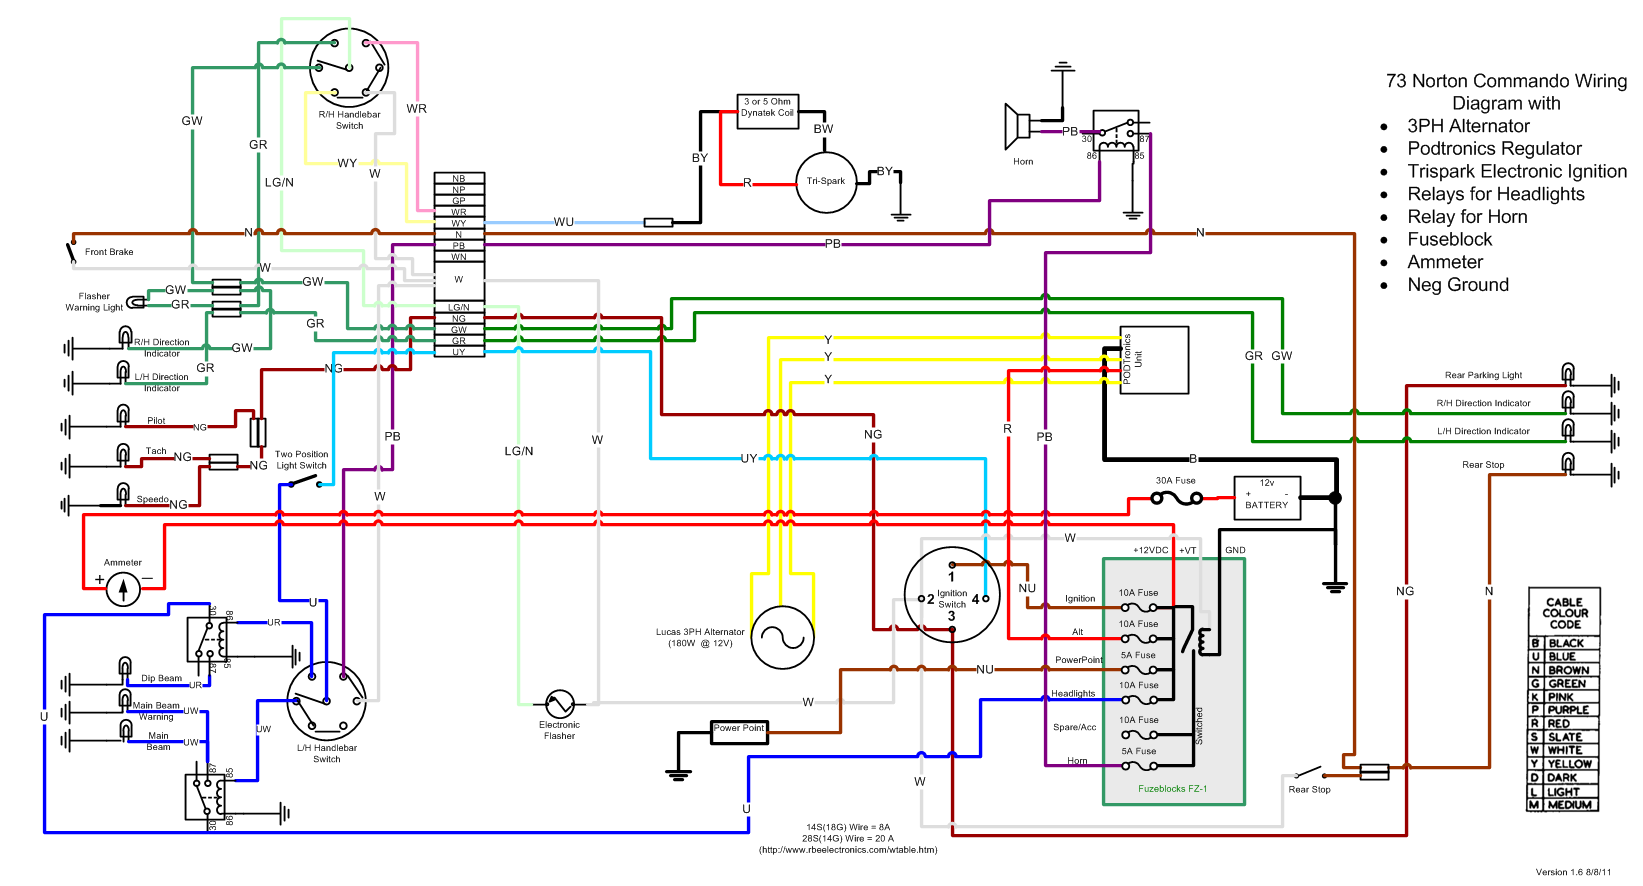 Single Phase Motor Wiring Diagrams 230 Volt likewise Strange Electrical Issue Update besides Wiring Help Please 297598 in addition Wiring Diagram For Control Transformer in addition Electrical Wiring Diagrams For Air Conditioning. on 3 phase motor wiring diagrams 120 control